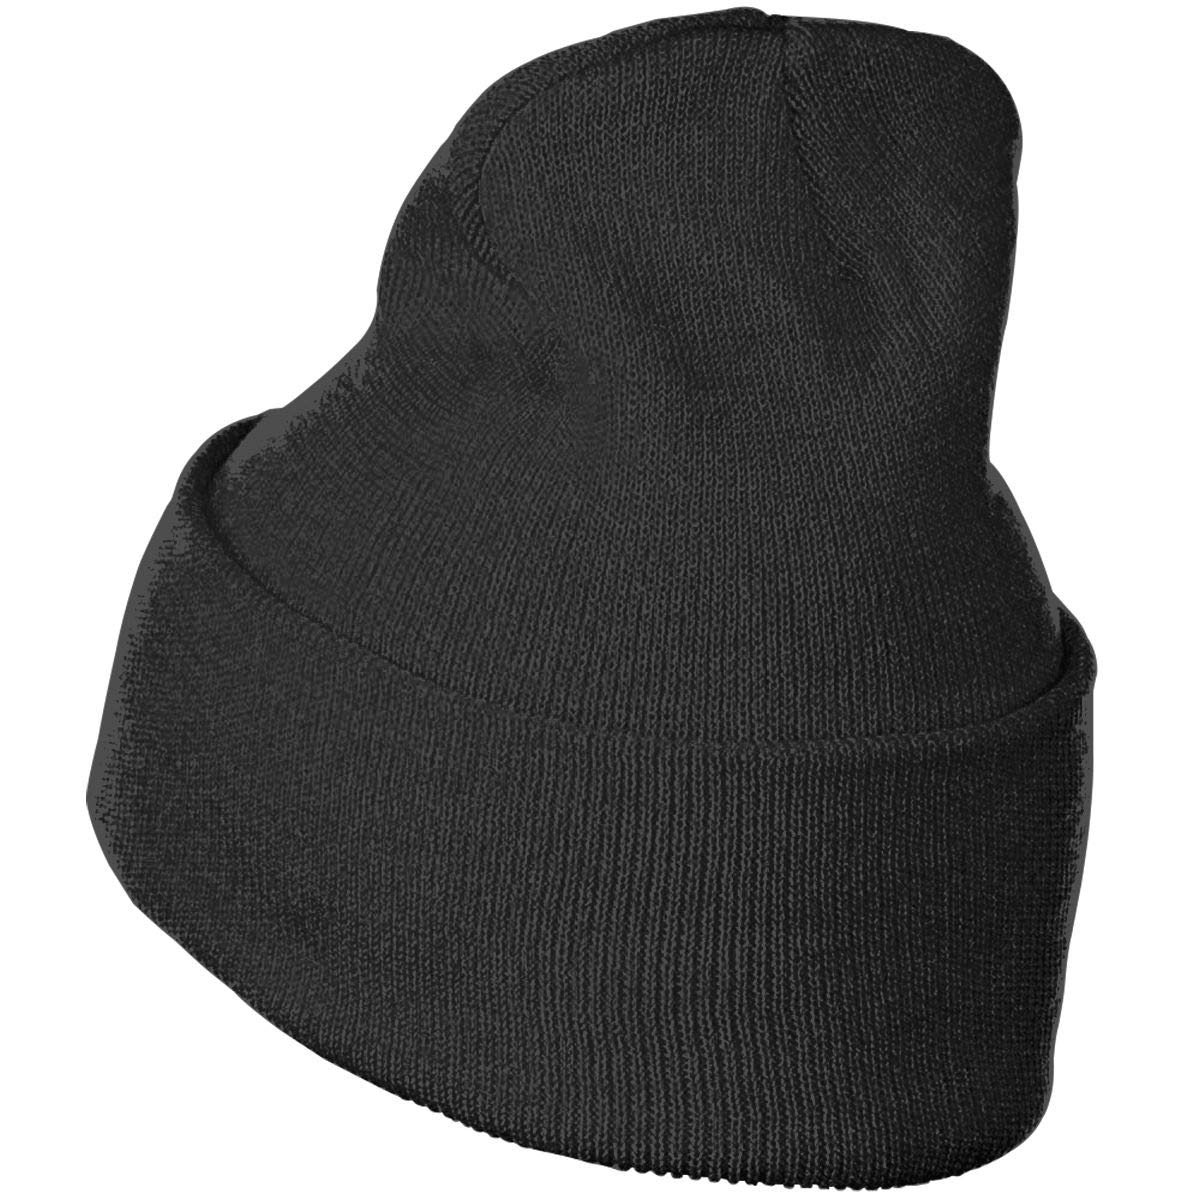 PCaag7v Egg Gym Beanie Hat Winter Solid Warm Knit Unisex Ski Skull Cap